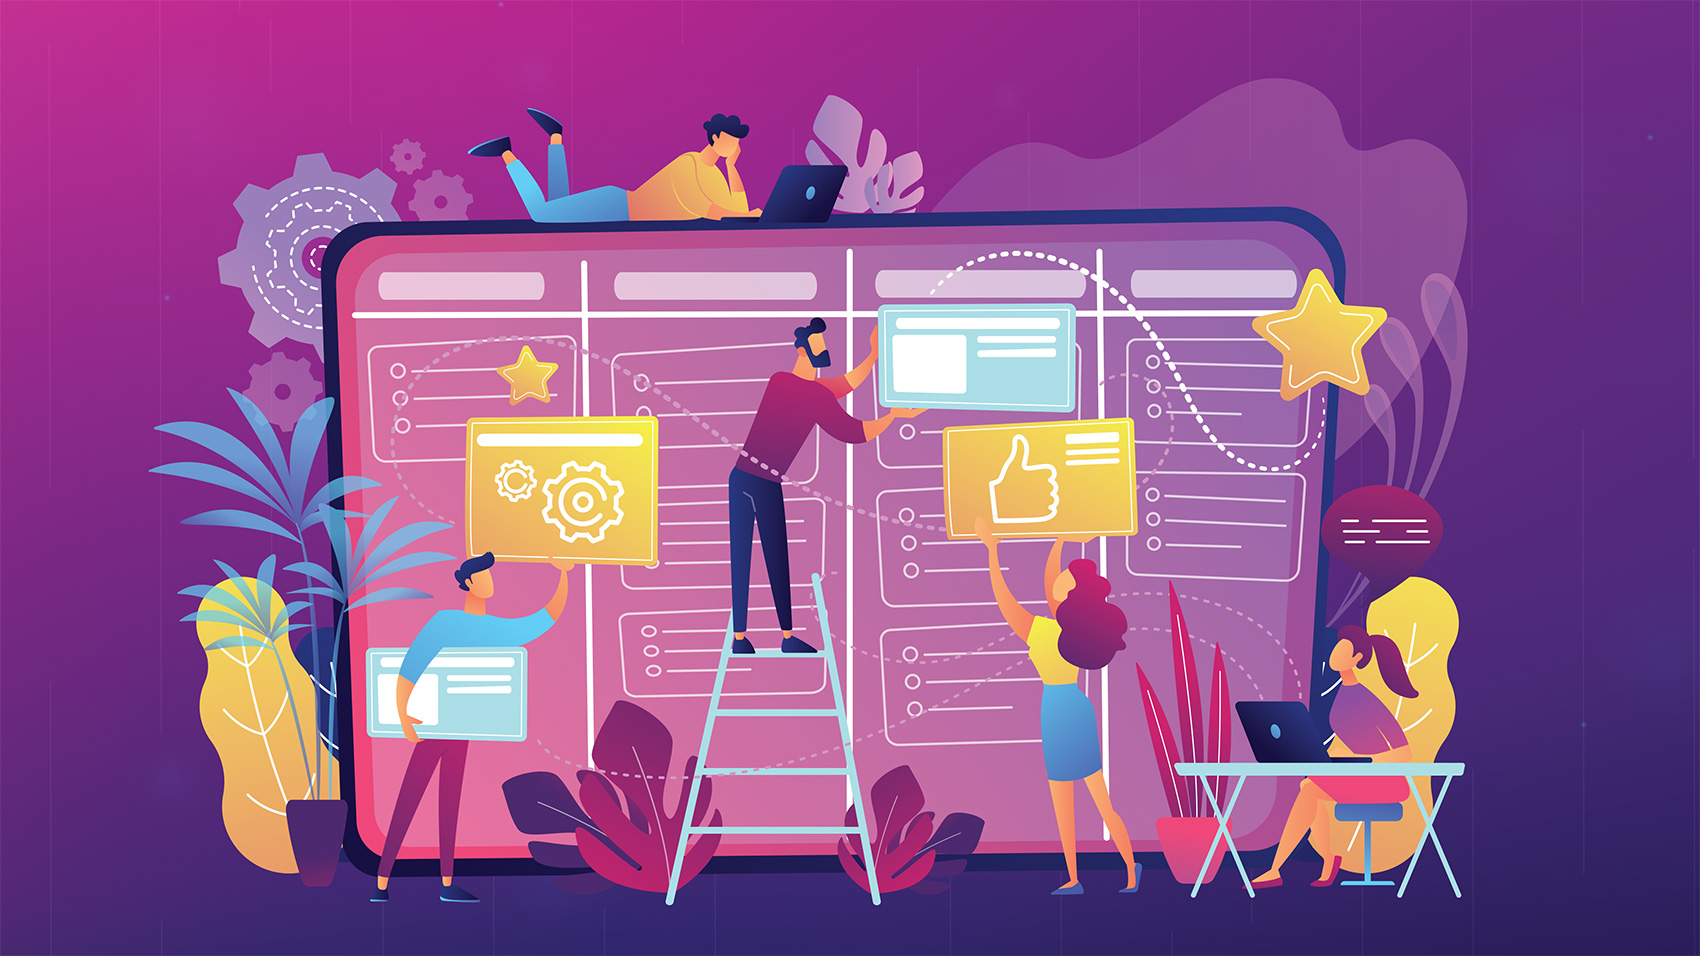 Everything you need to know about design systems